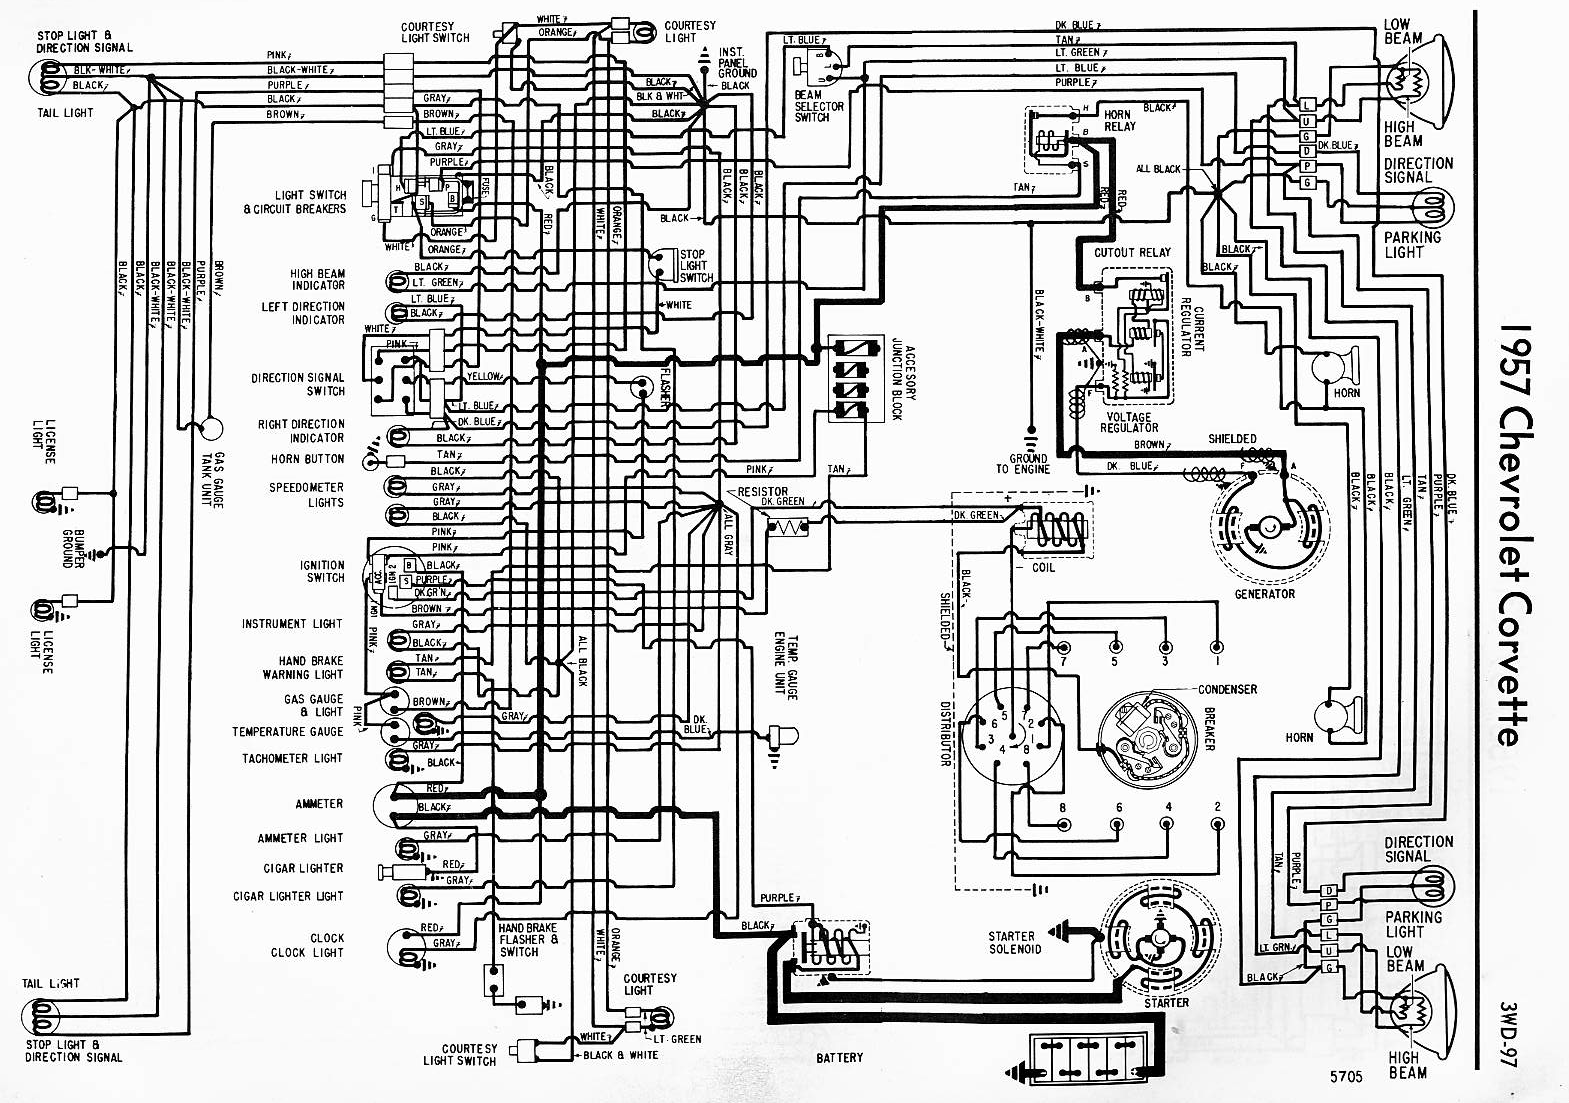 76 Corvette Wiring Harness Best Electrical Circuit Diagram 1960 Chevy Truck Horn 77 Free Download Library Rh 59 Codingcommunity De 1978 1966